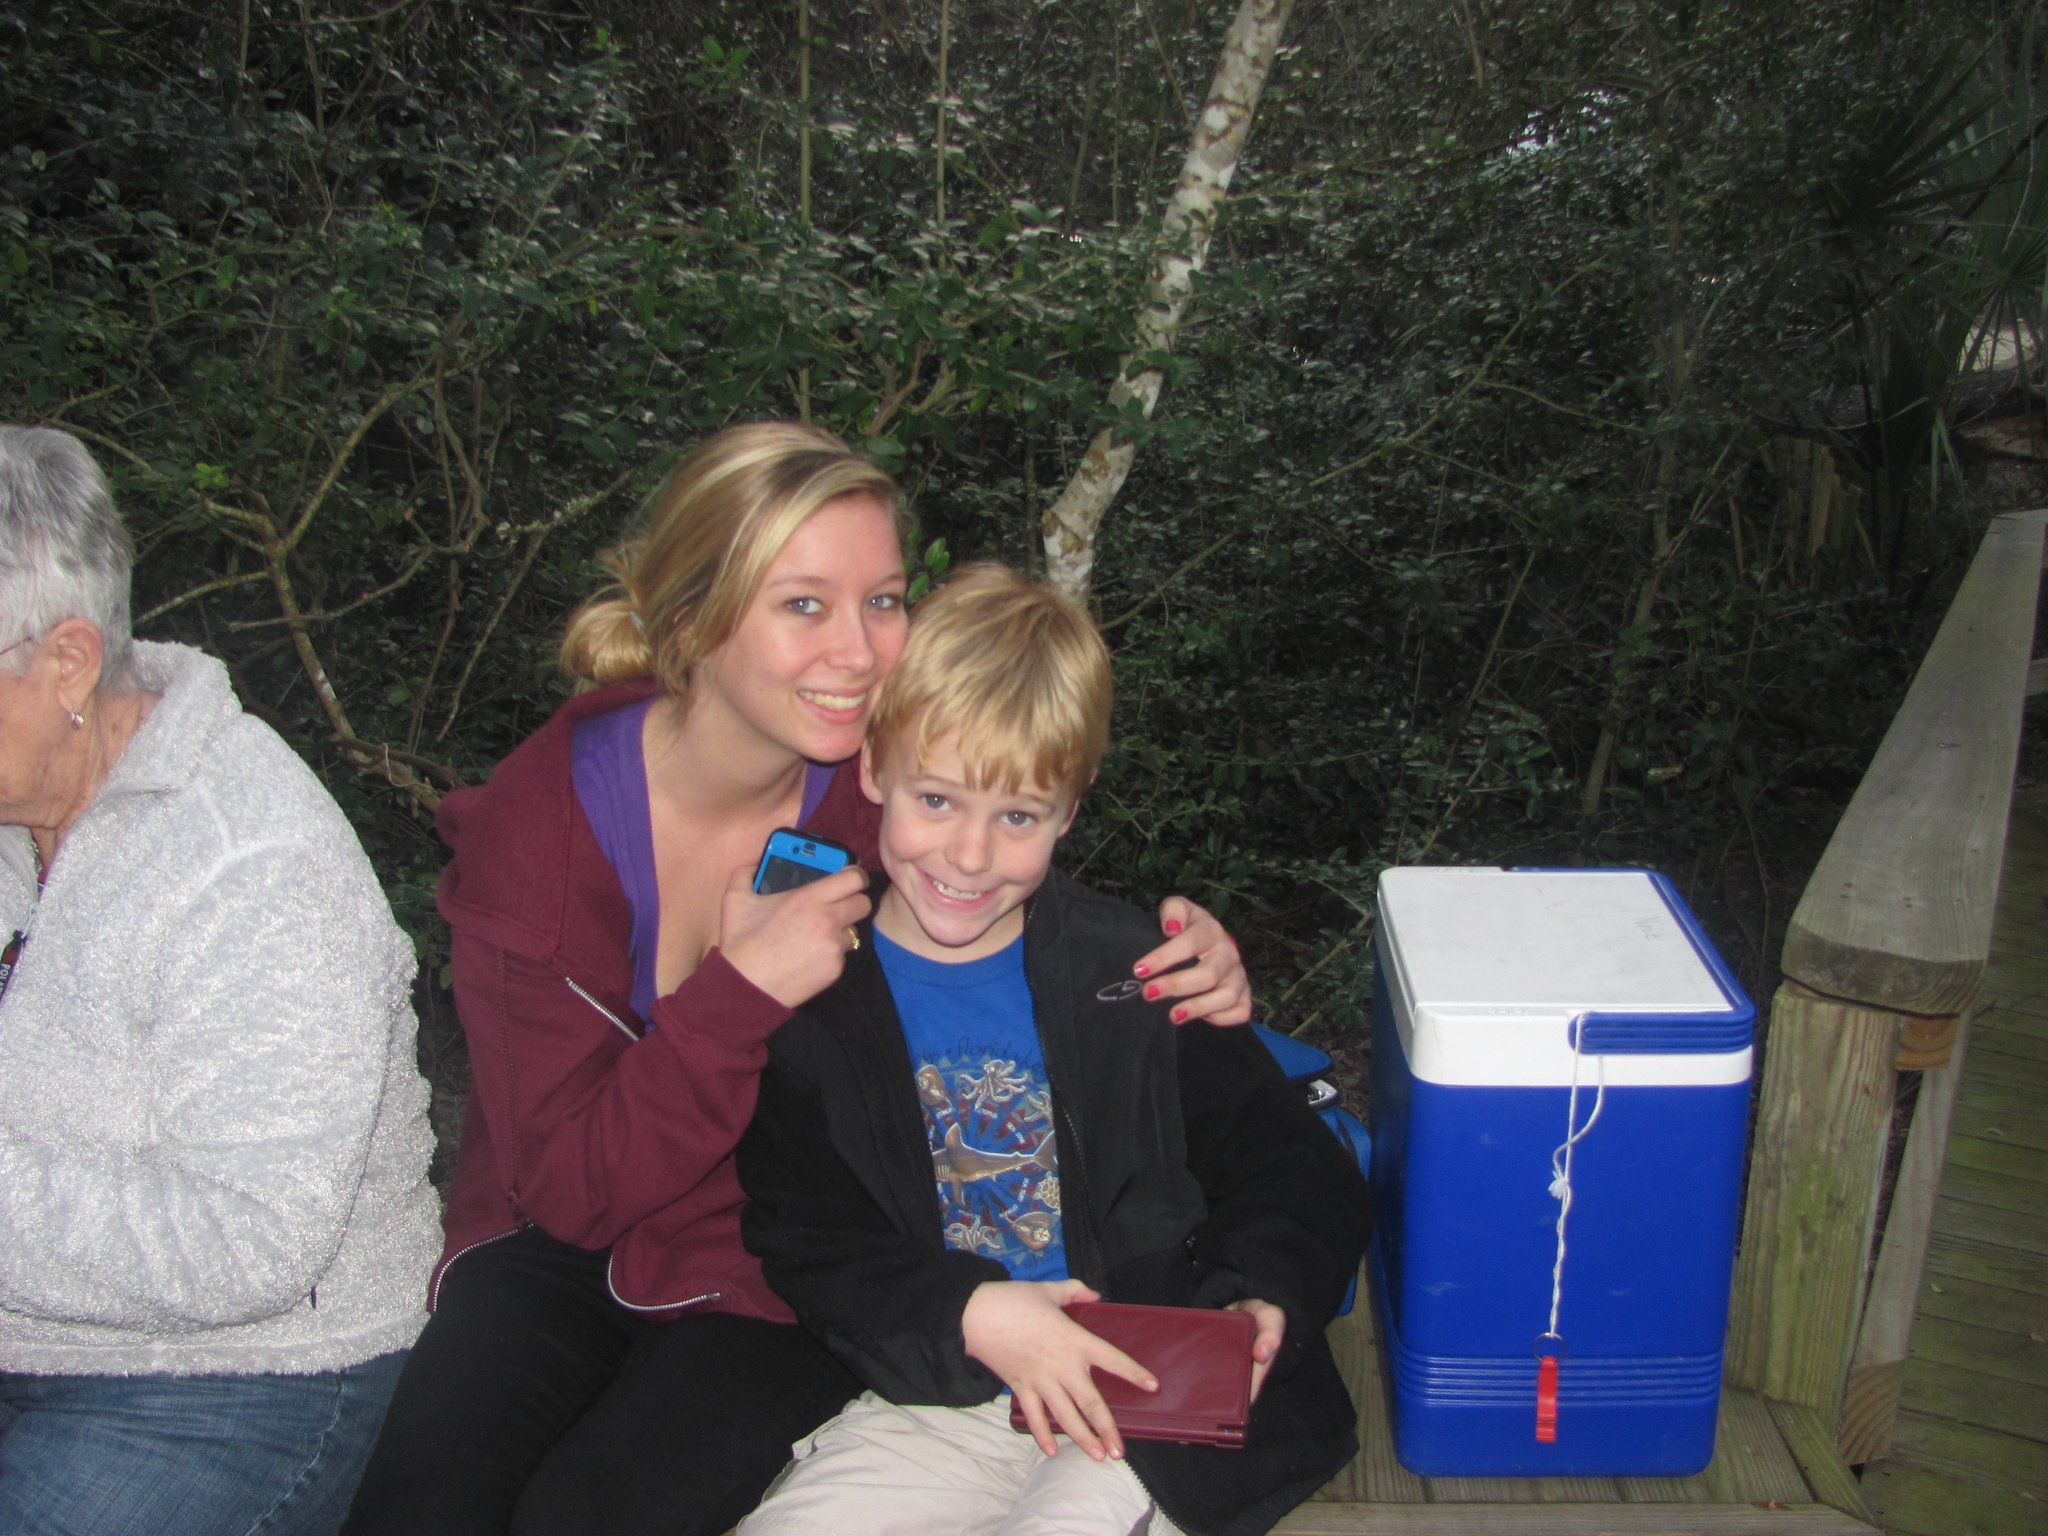 woman with young boy sitting next to blue cooler